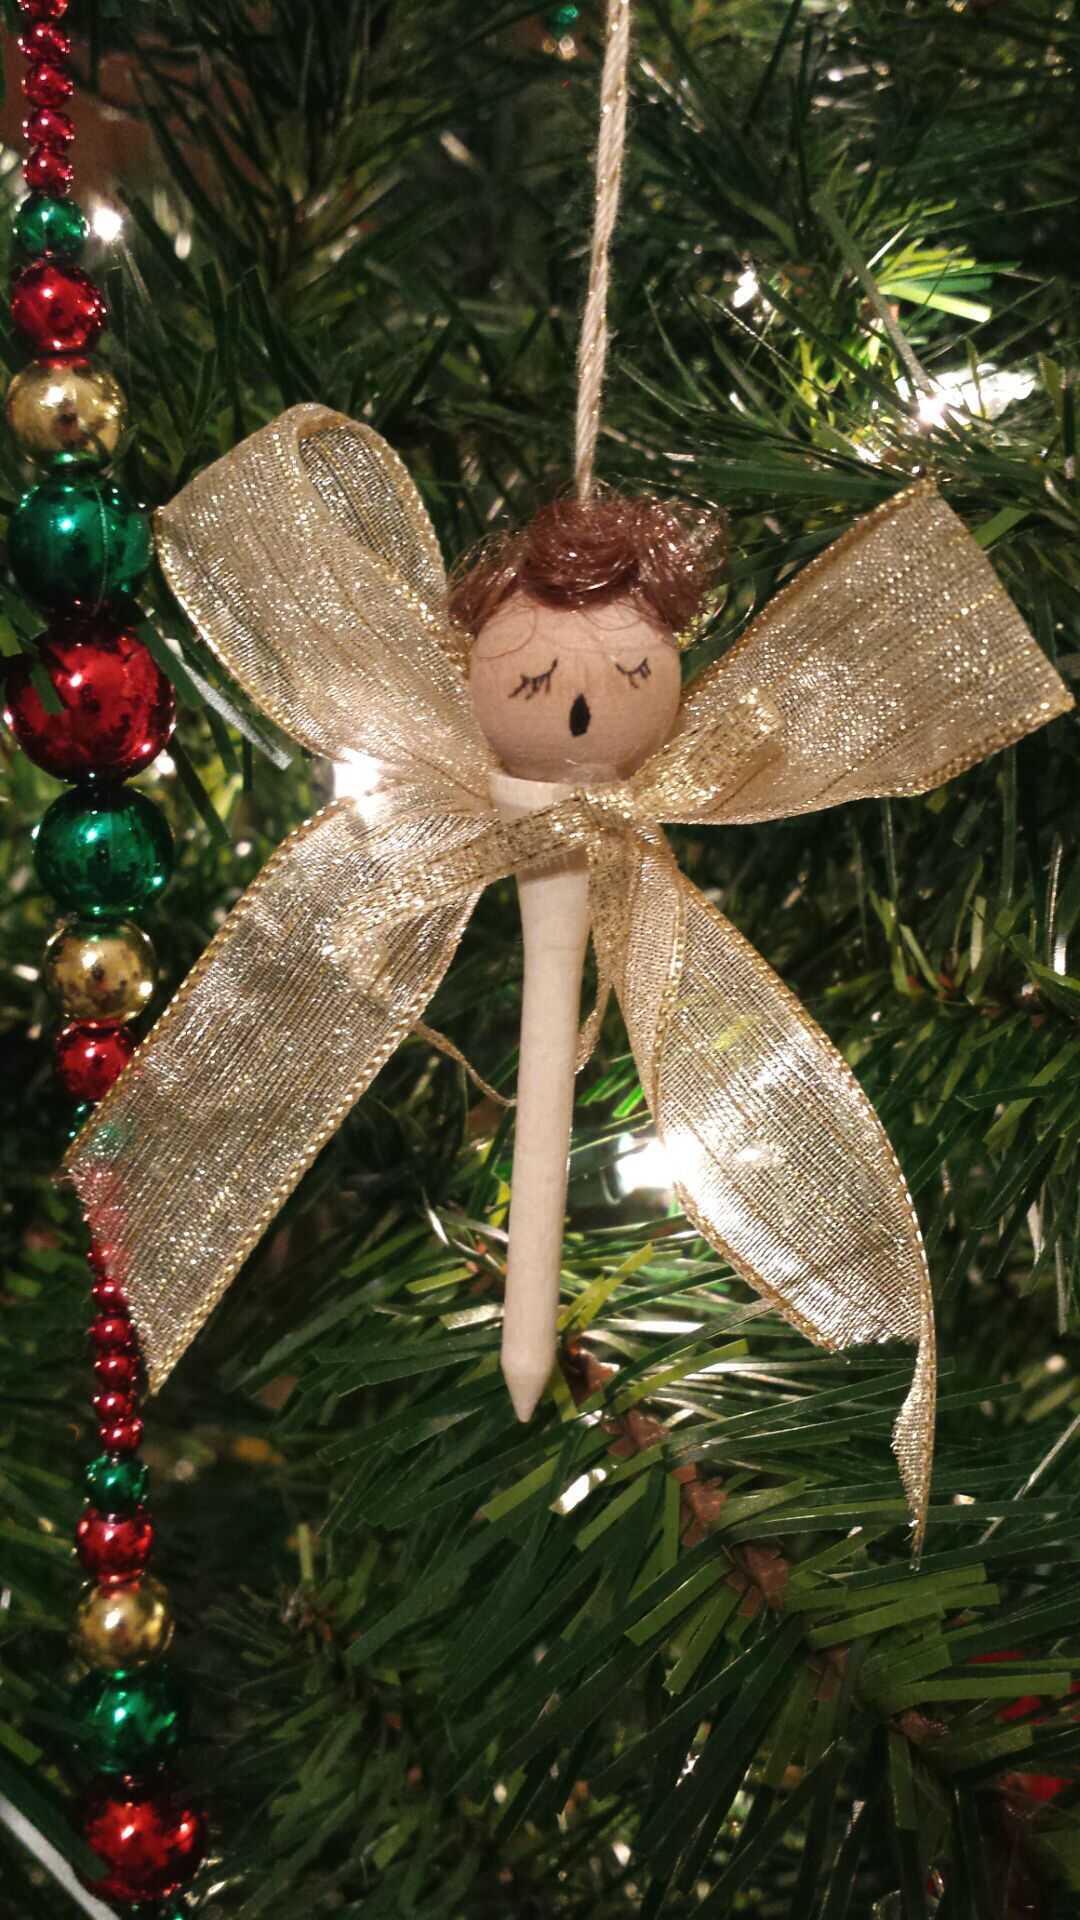 Golf tee Christmas angel ornament … angels